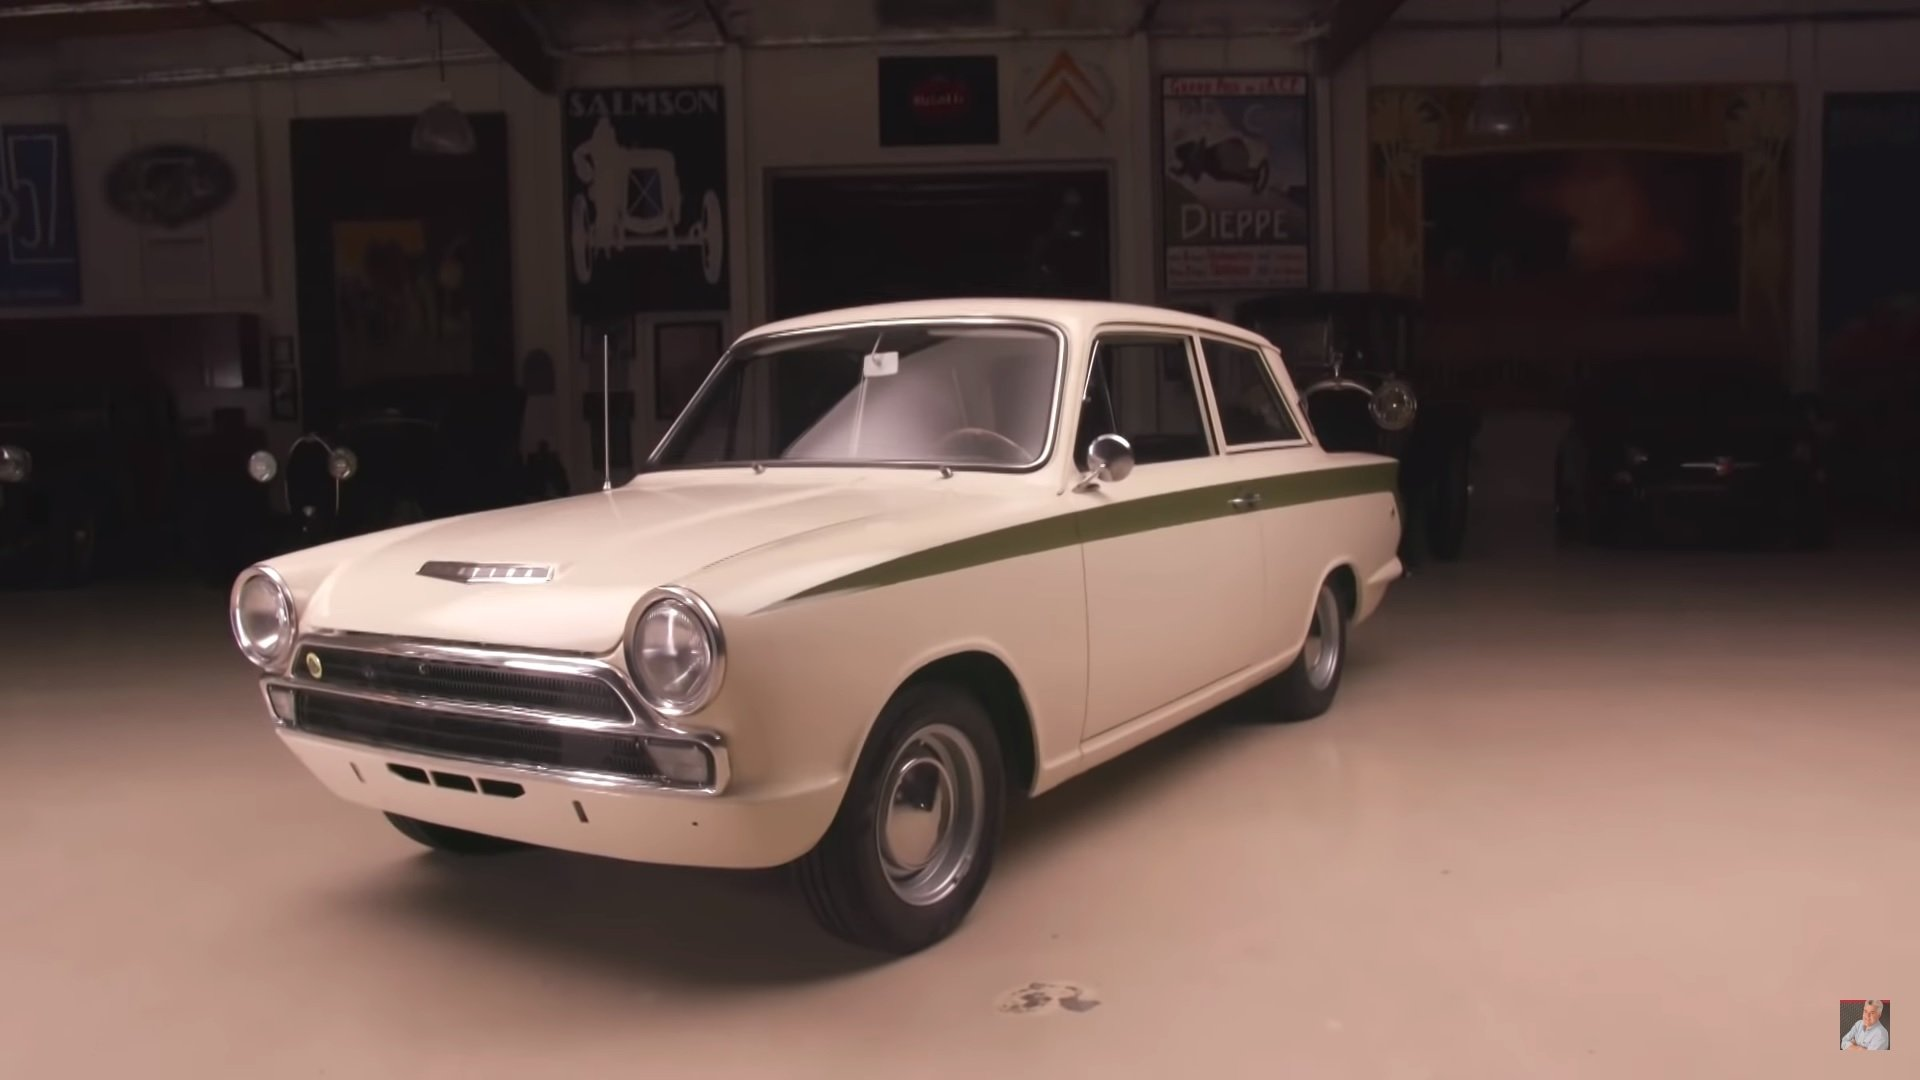 c1f992e4 The Lotus Cortina, or Ford Cortina Lotus as it has also become known, is  the street-going version of the Group 2 touring car that became one of the  most ...